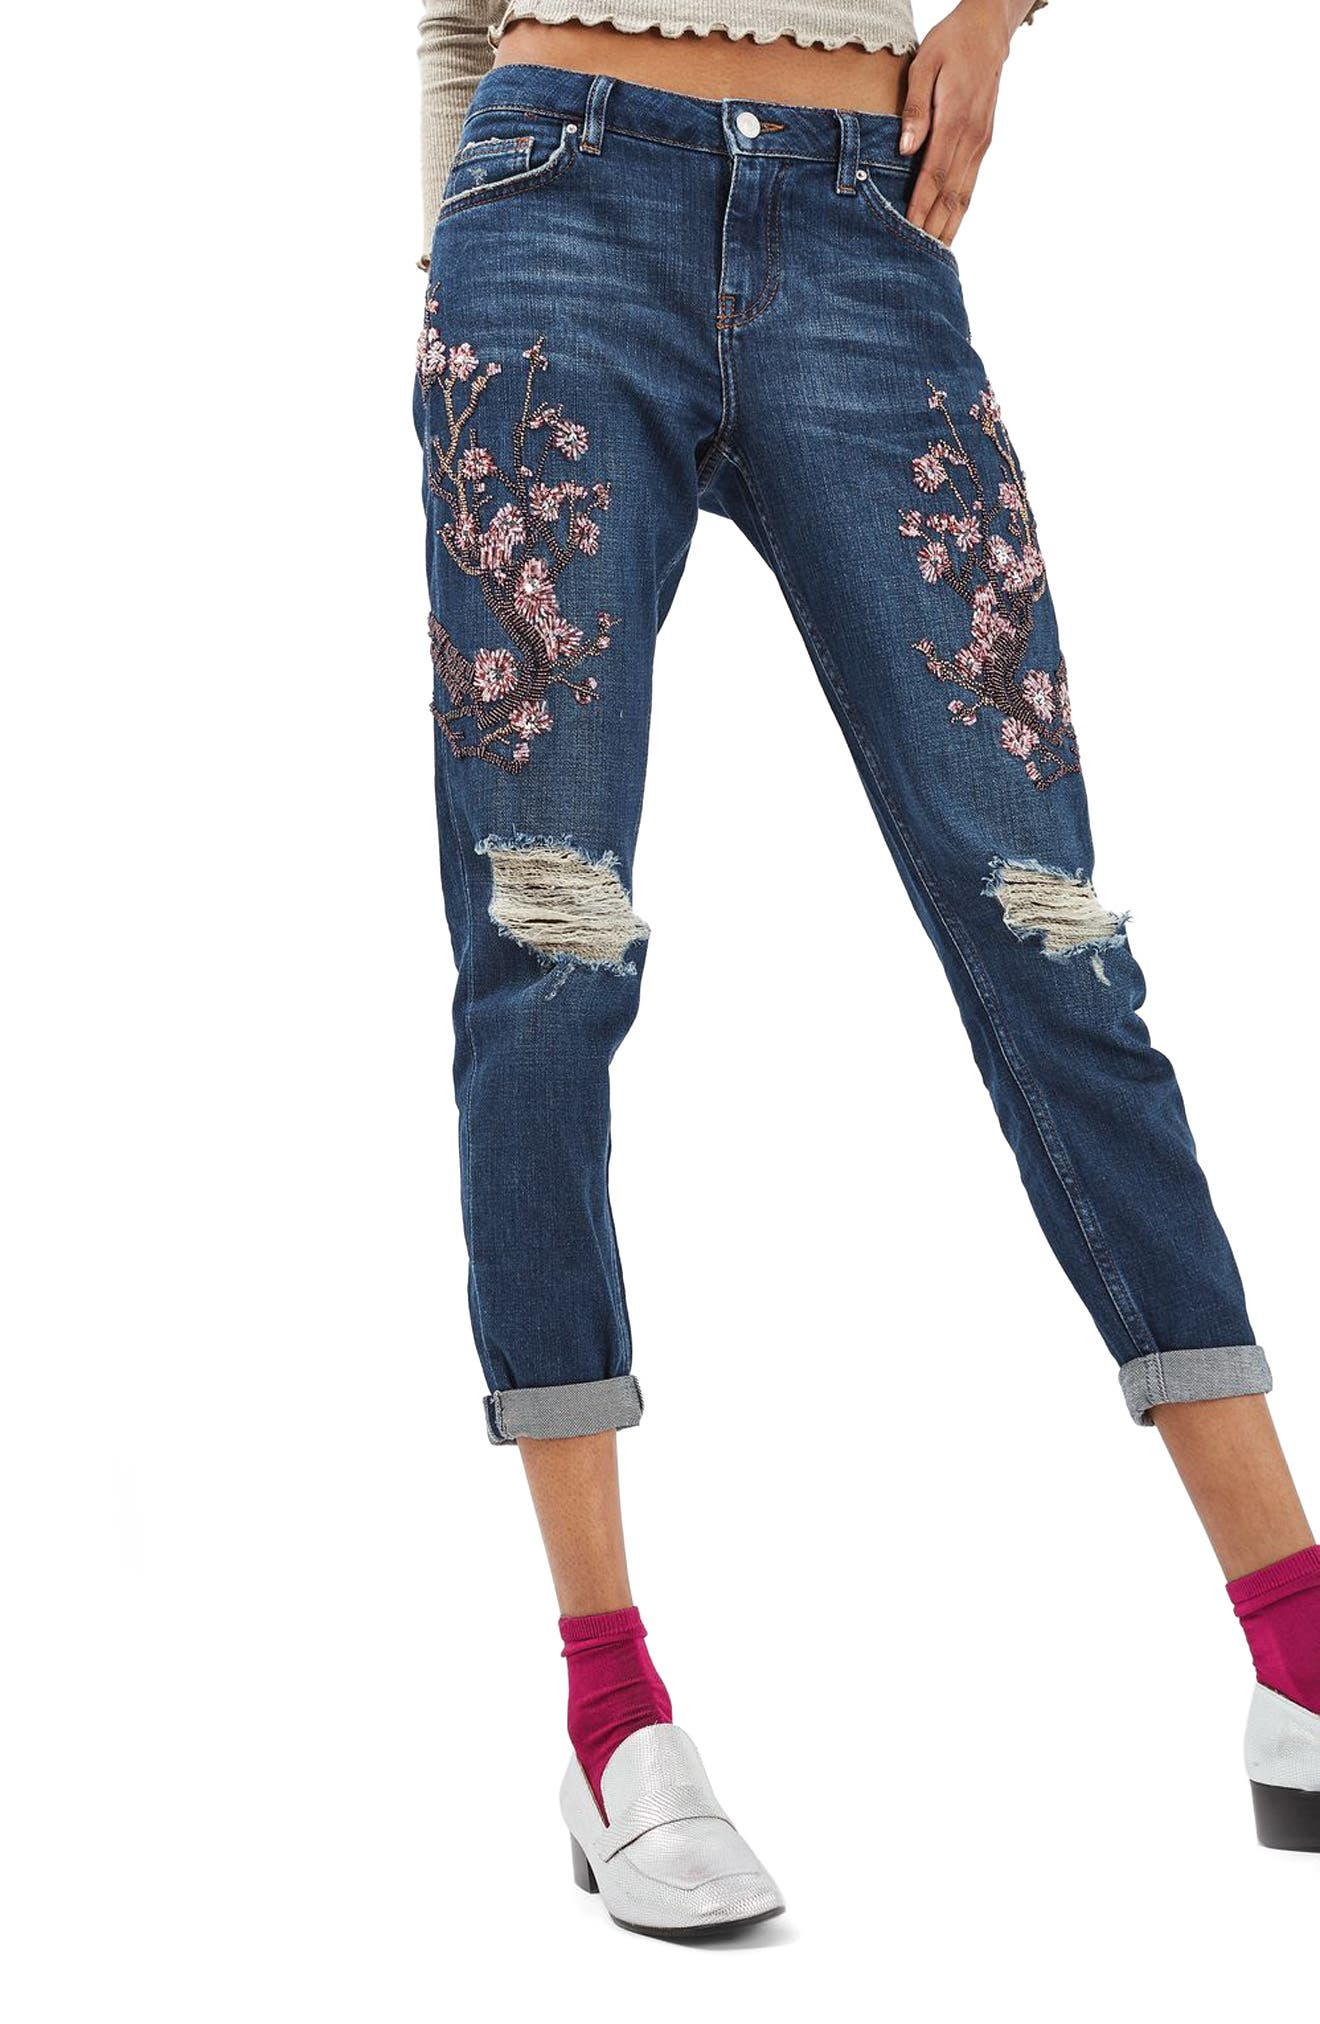 Main Image - Topshop Lucas Beaded Boyfriend Jeans (Limited Edition)